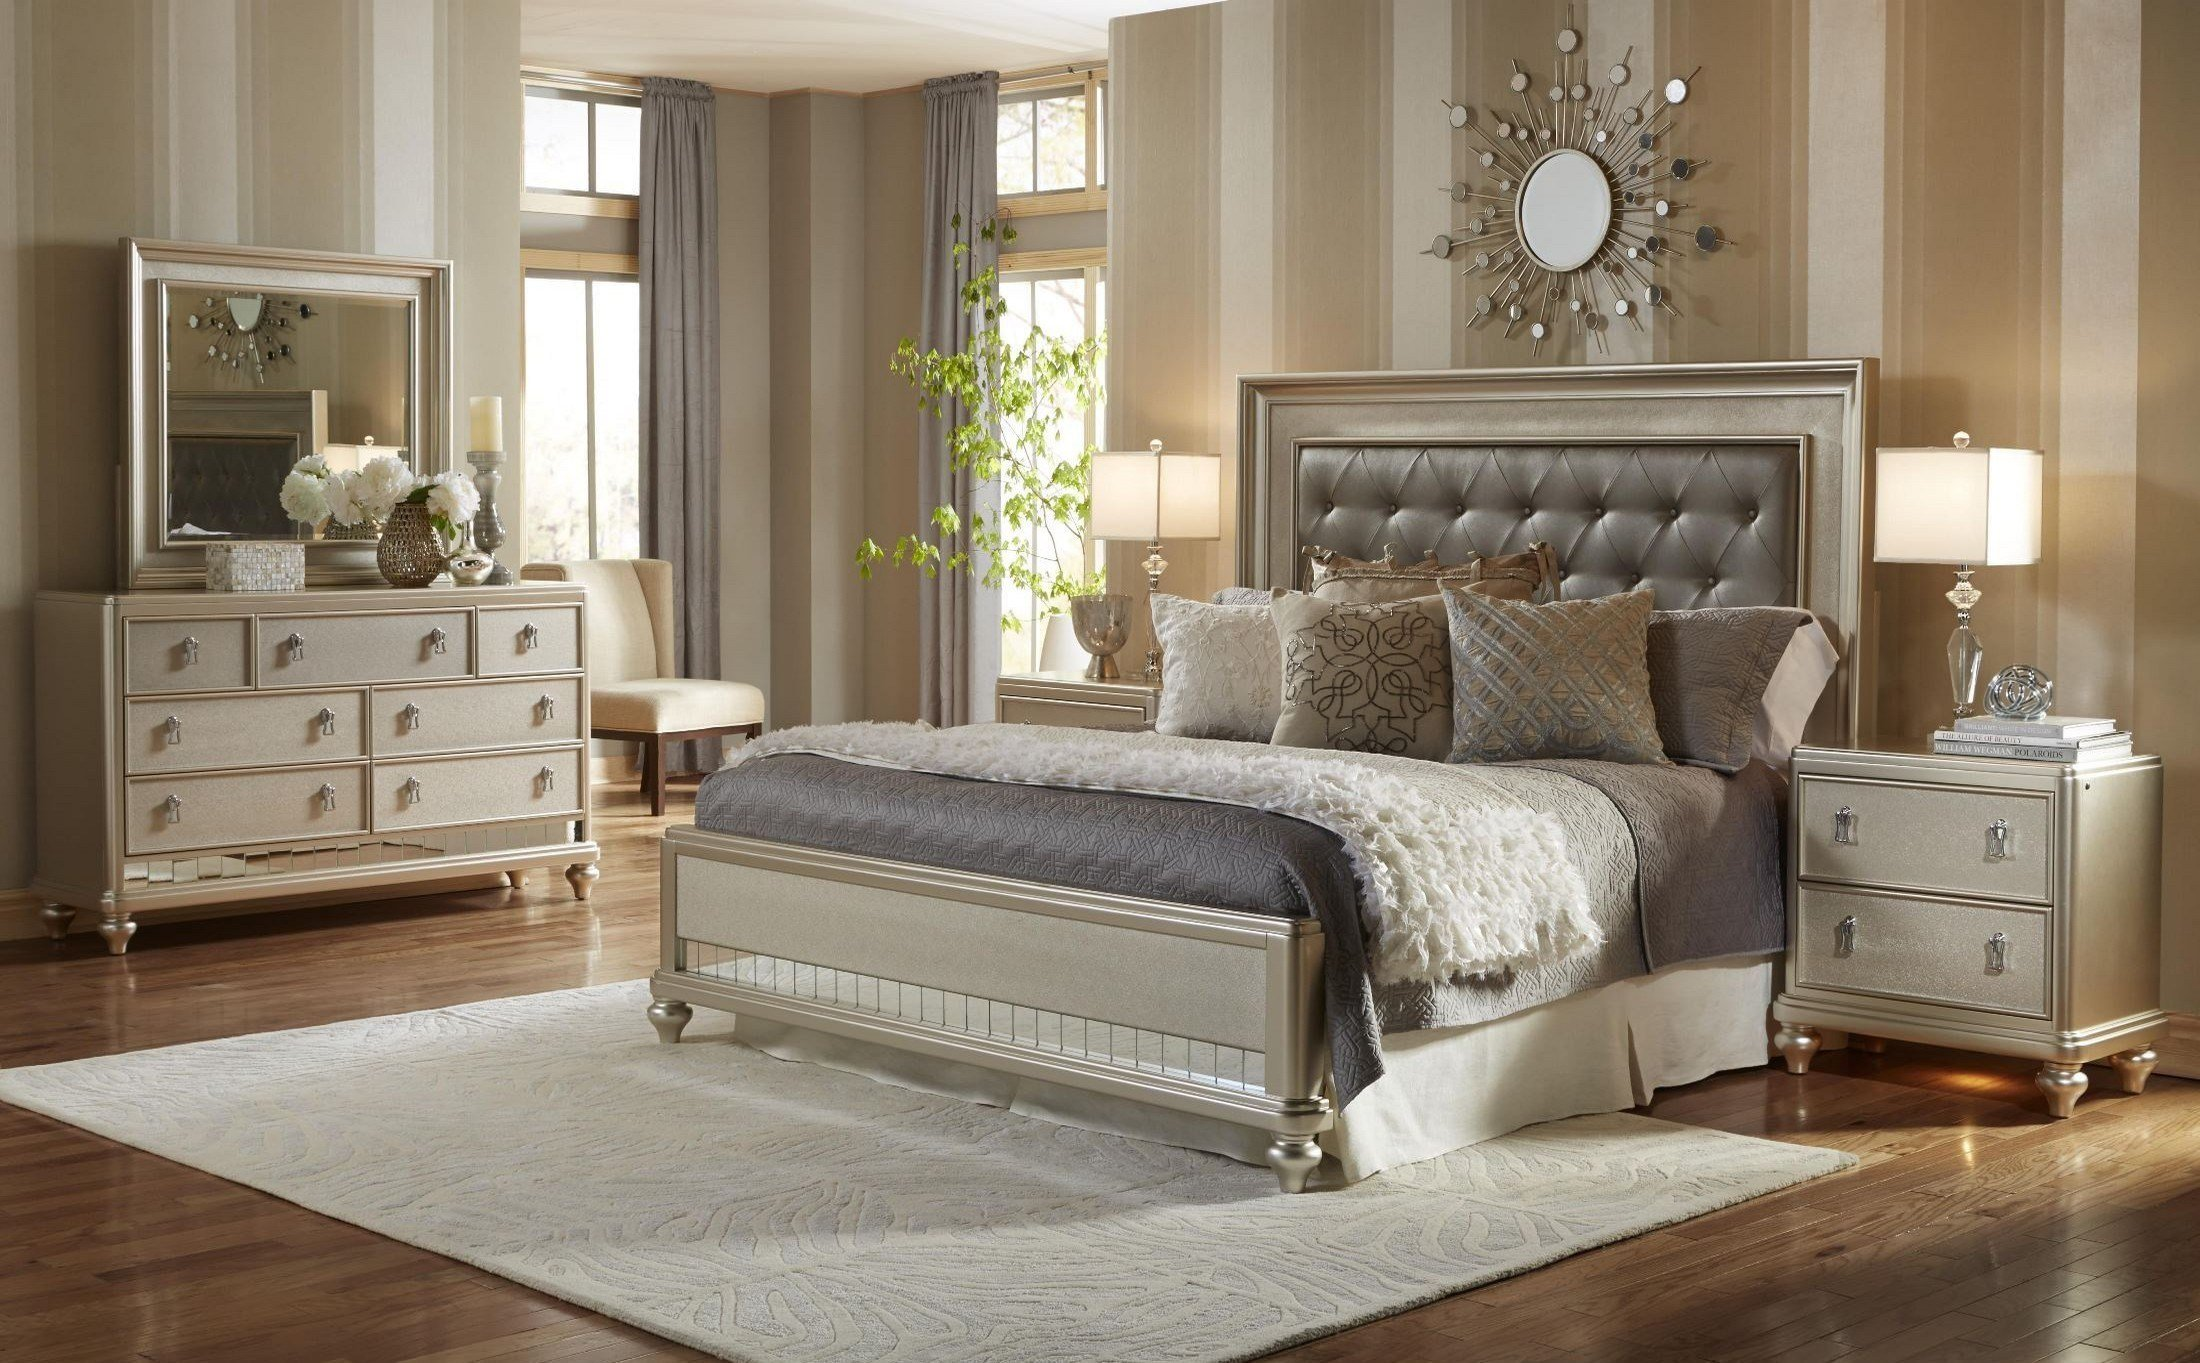 Best Diva Panel Bedroom Set From Samuel Lawrence 8808 255 257 With Pictures